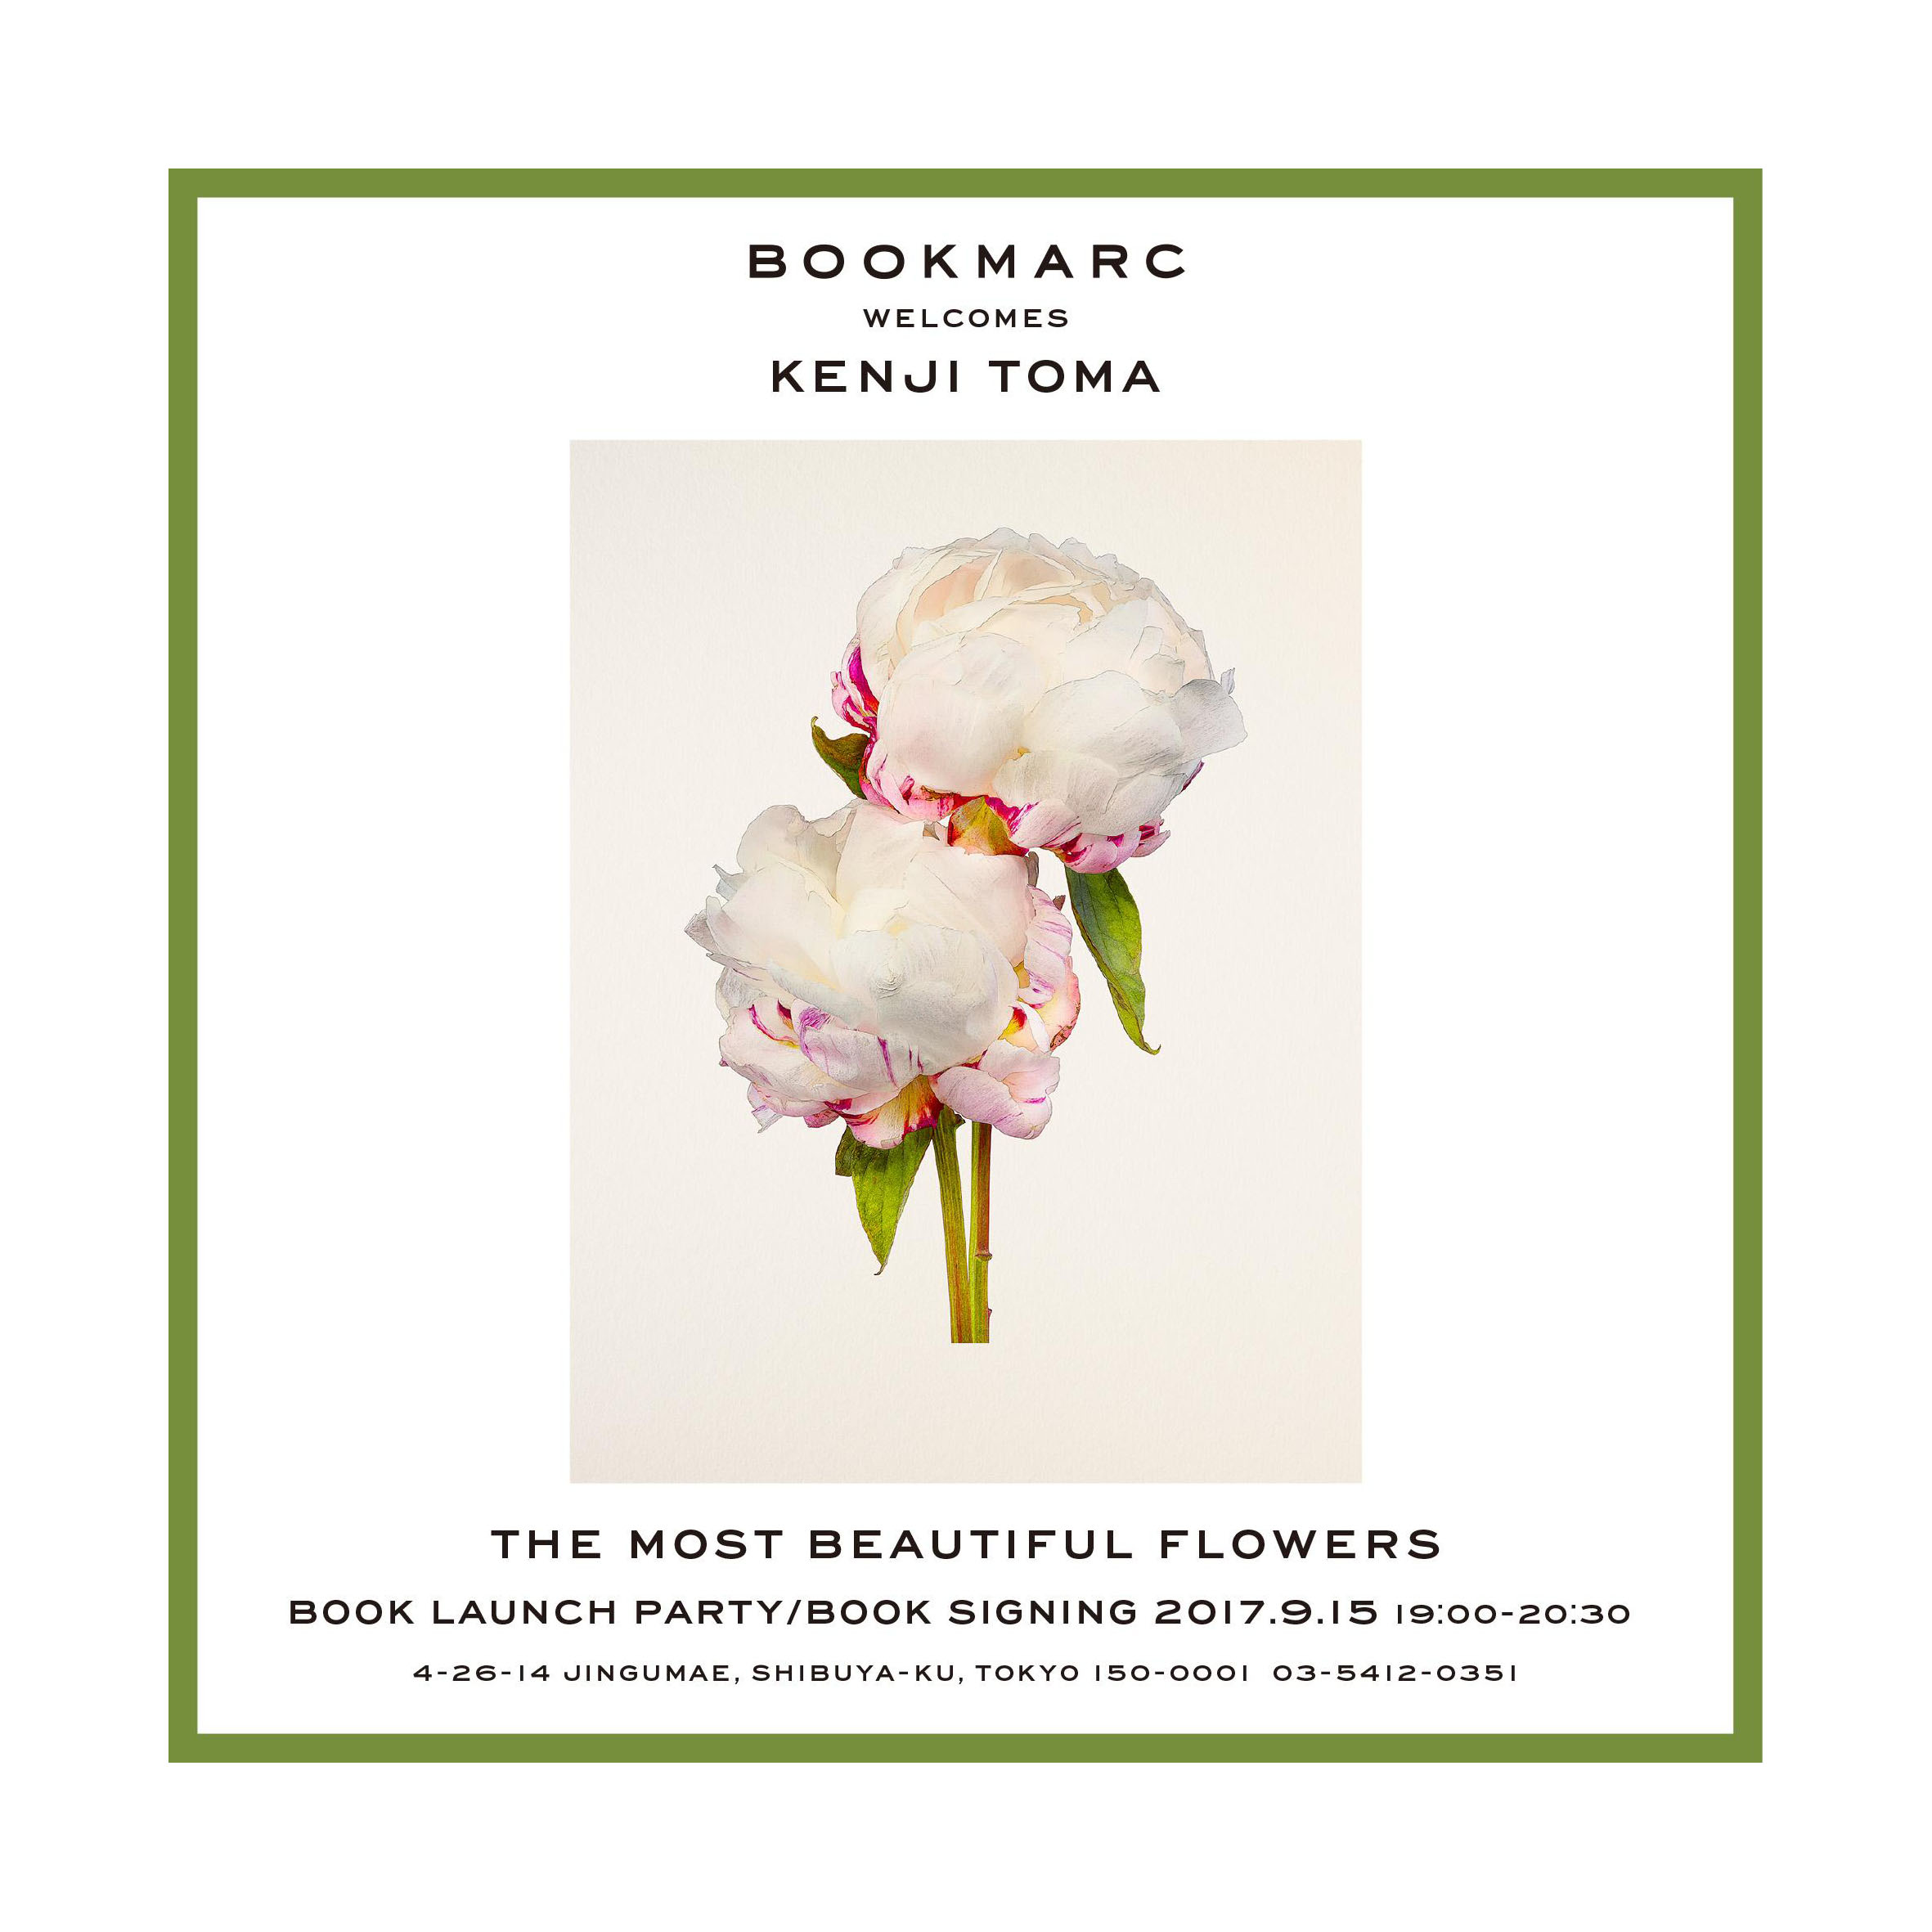 The Most Beautiful Flowers   BOOKMARC, Tokyo 09/15/2017